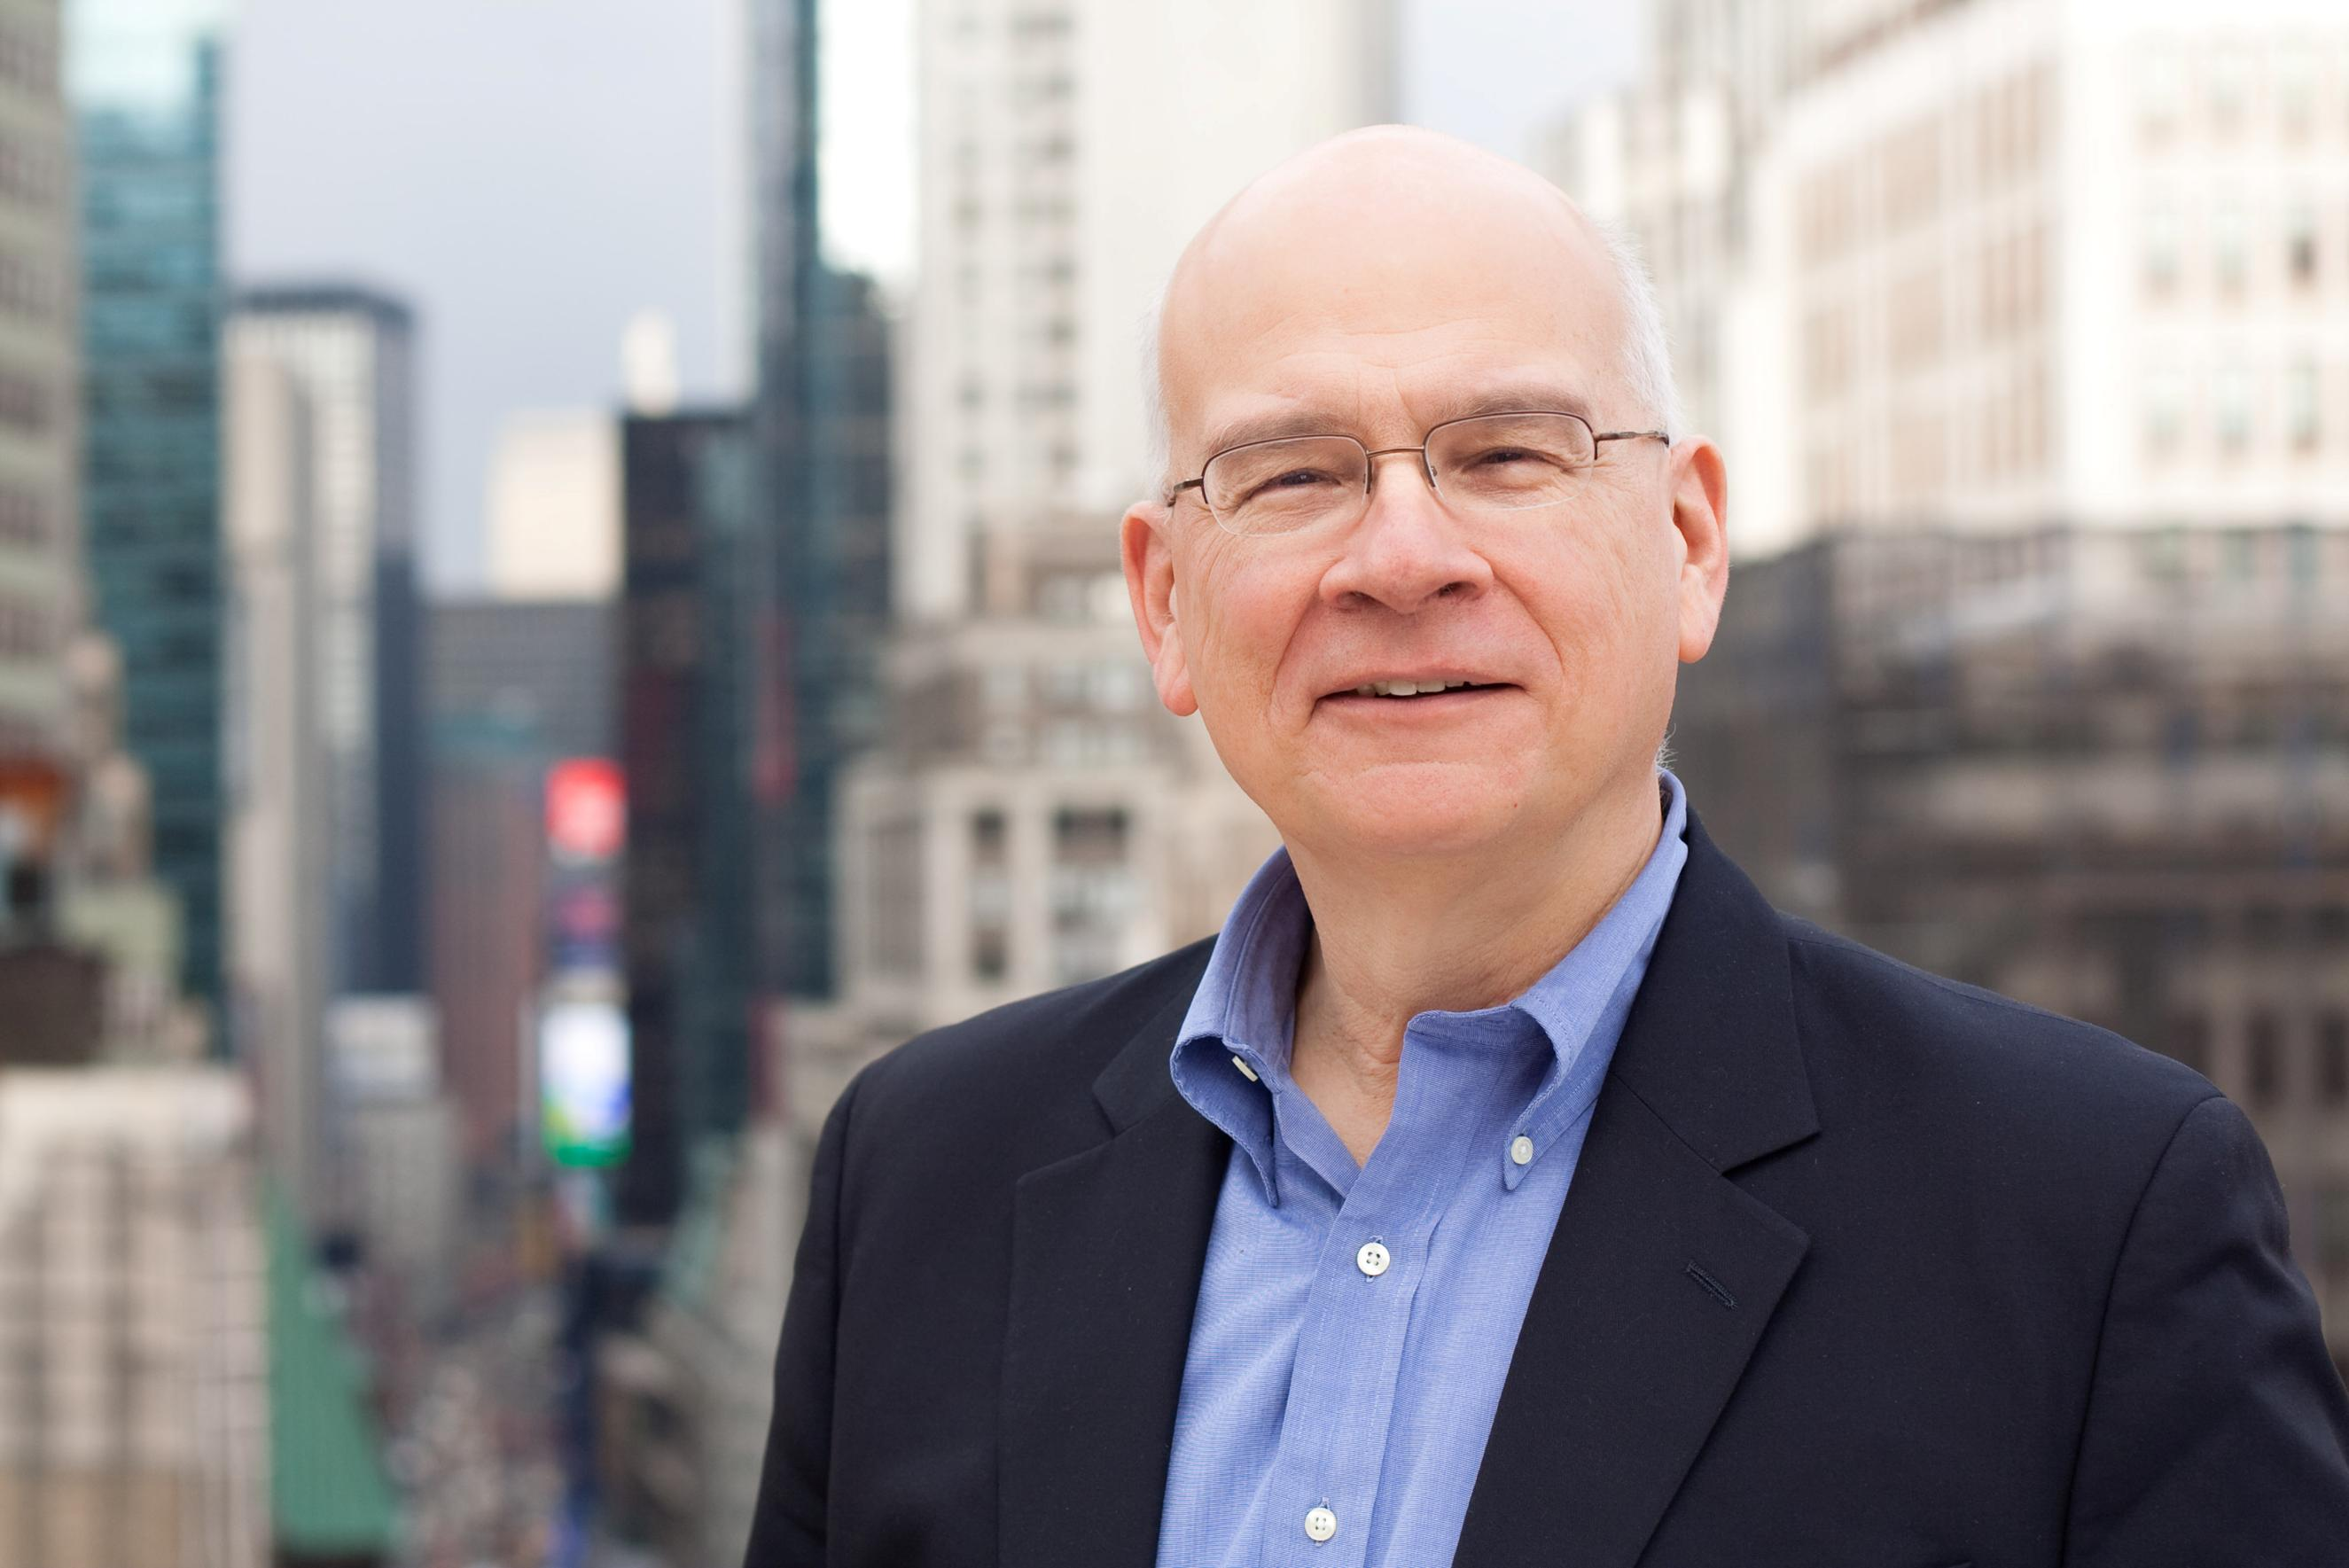 tim-keller-head-shot-2011.jpg